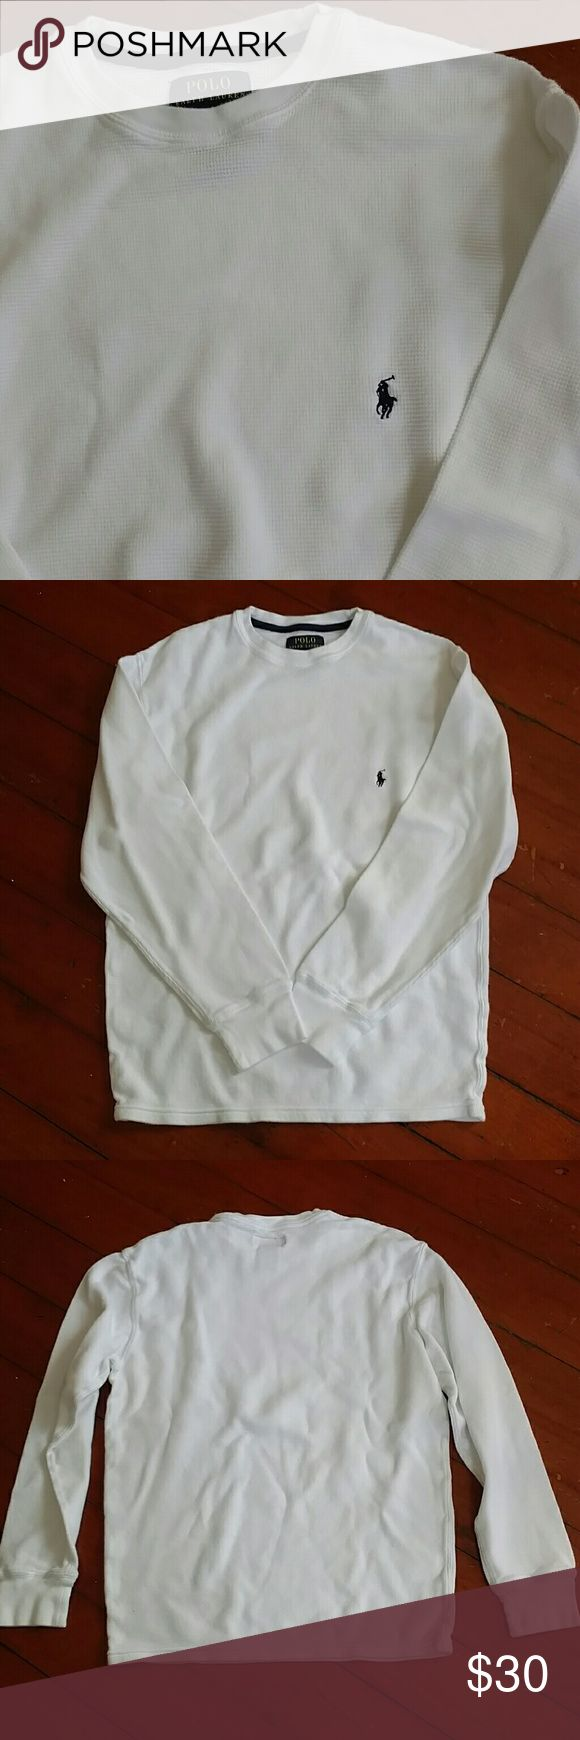 White waffle knit shirt by Polo by Ralph Lauren M This is a white long sleeve waffle knit shirt by Polo by Ralph Lauren.  100% cotton. Men's medium. Polo by Ralph Lauren Shirts Tees - Long Sleeve